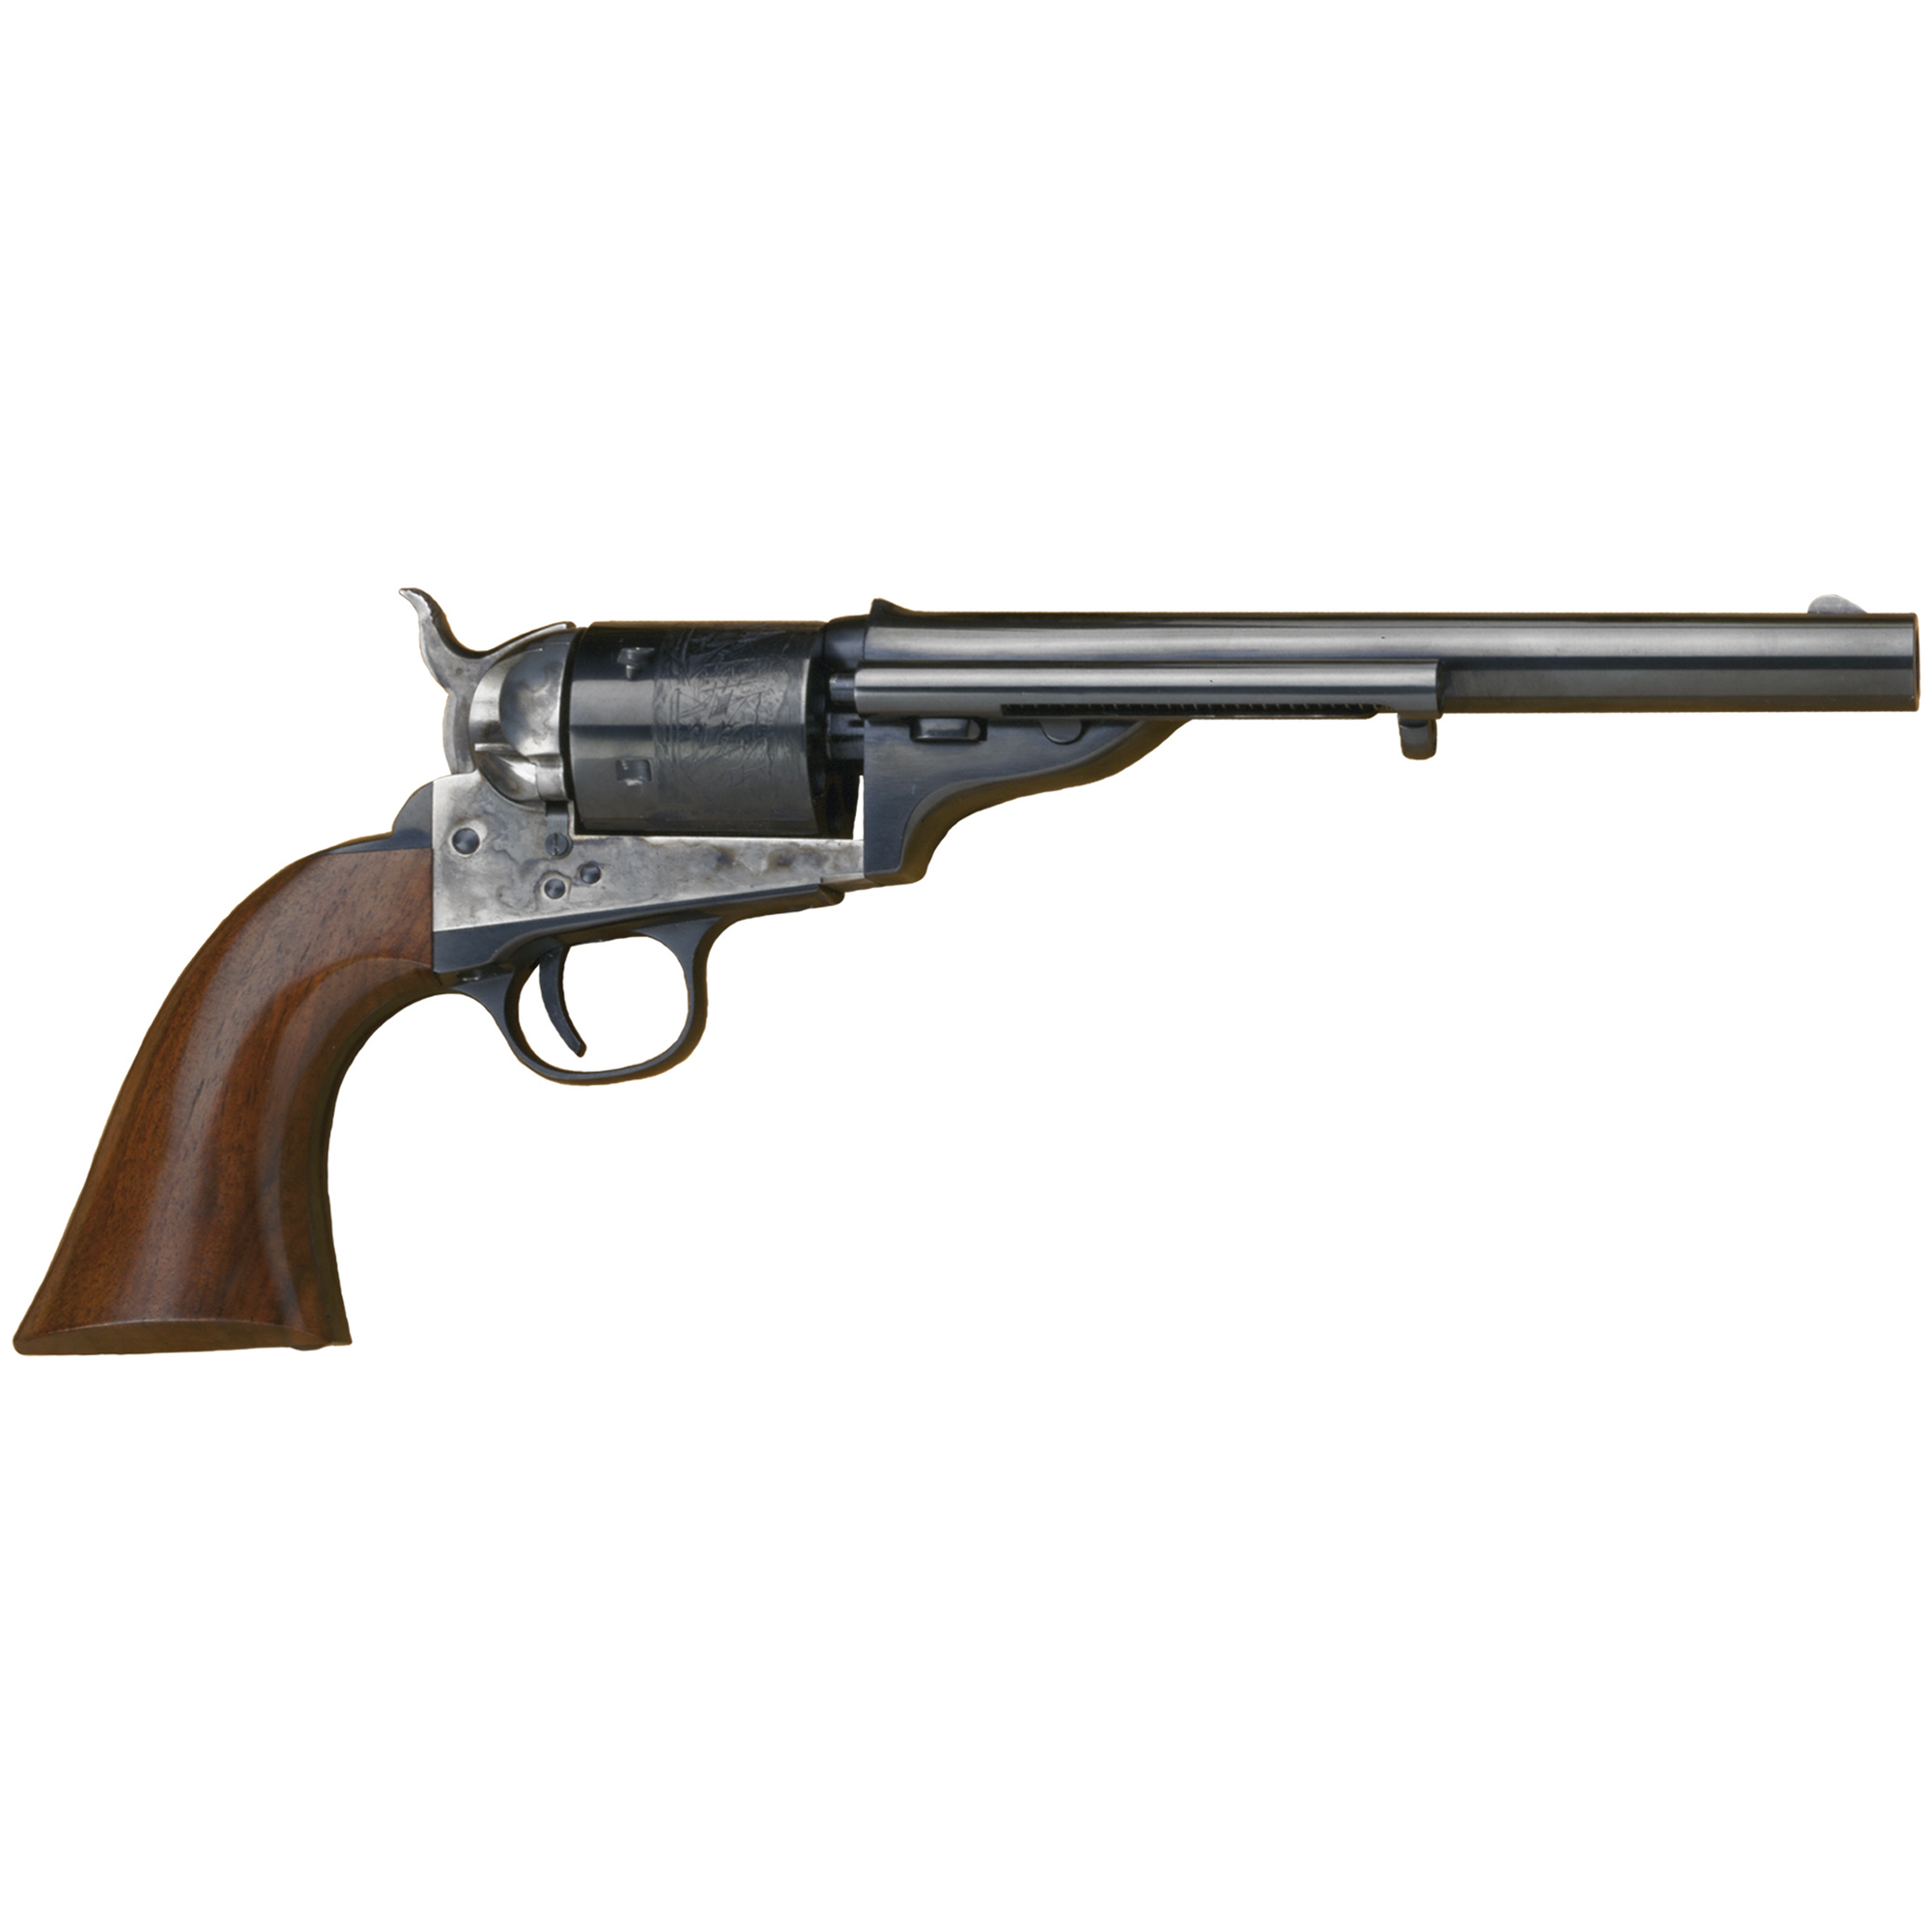 "Cimarron's 1872 Open Top Army"" like the original revolver in their collection it was reproduced from"" combines the sleek"" graceful lines of the caplock sixguns of the 1860s with the convenience of a modern metallic cartridge revolver. Cimarron's Open Top Army is a spitting image of the 1870s originals."